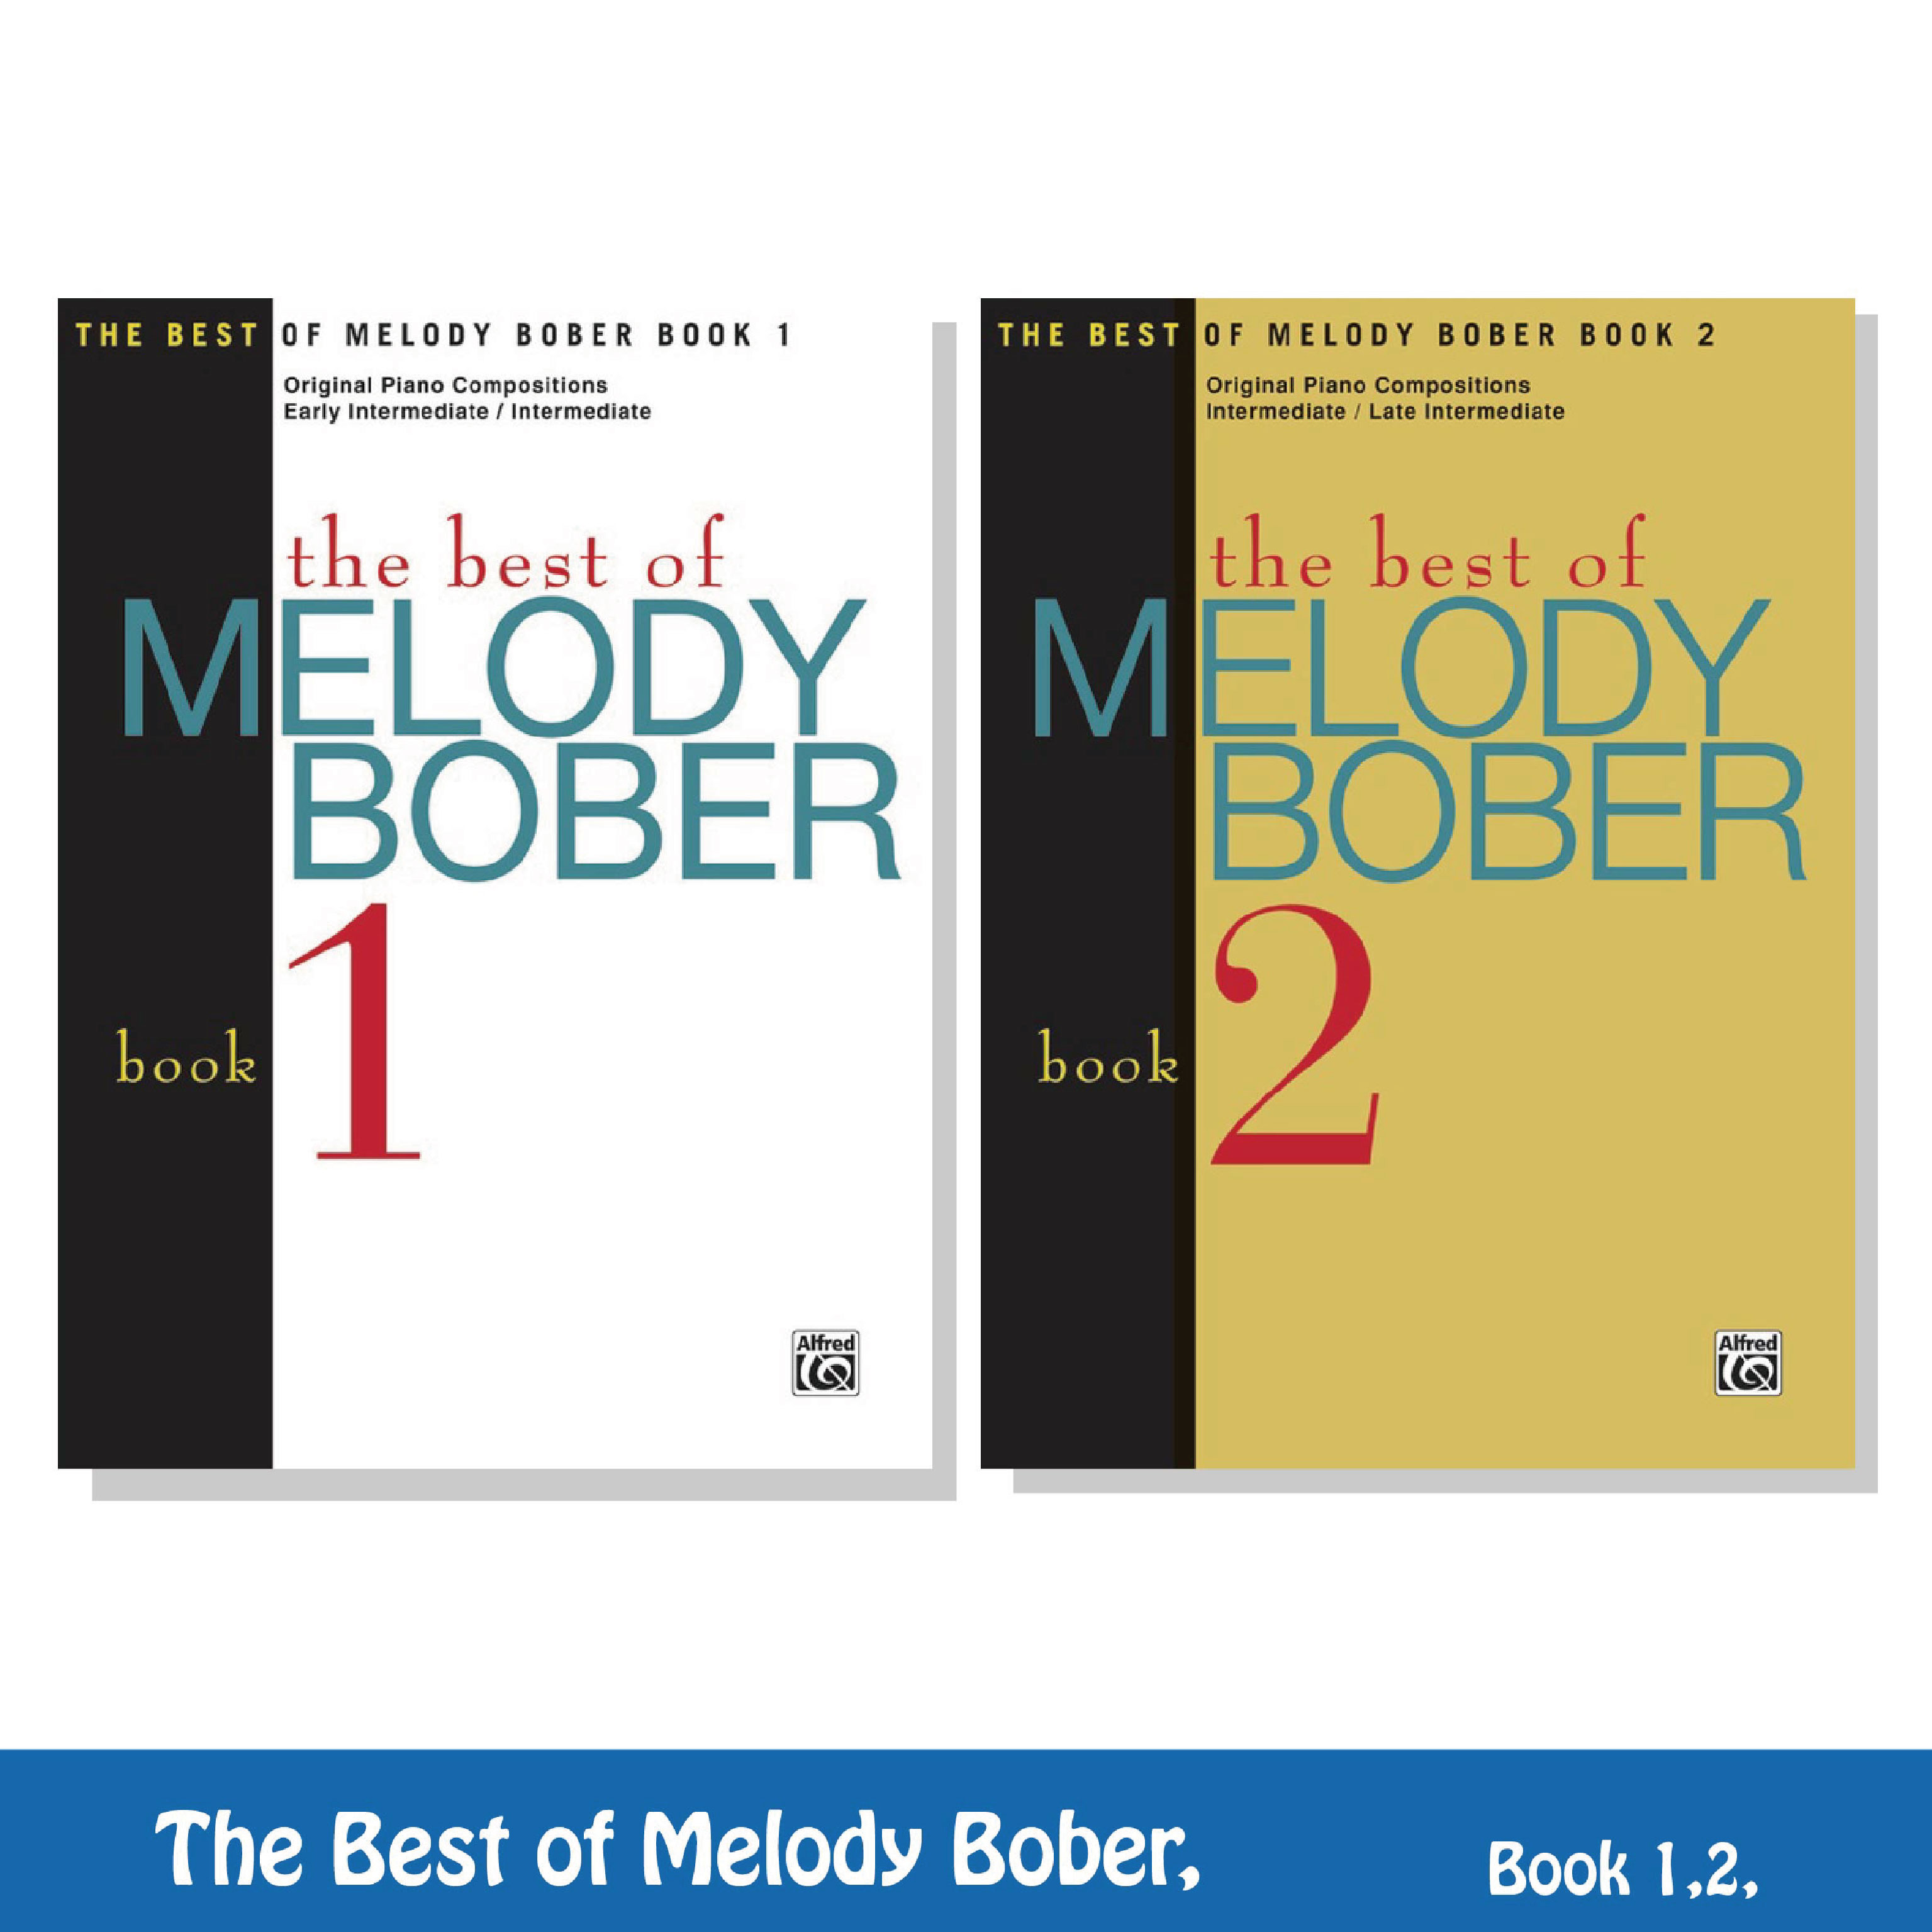 The Best of Melody Bober